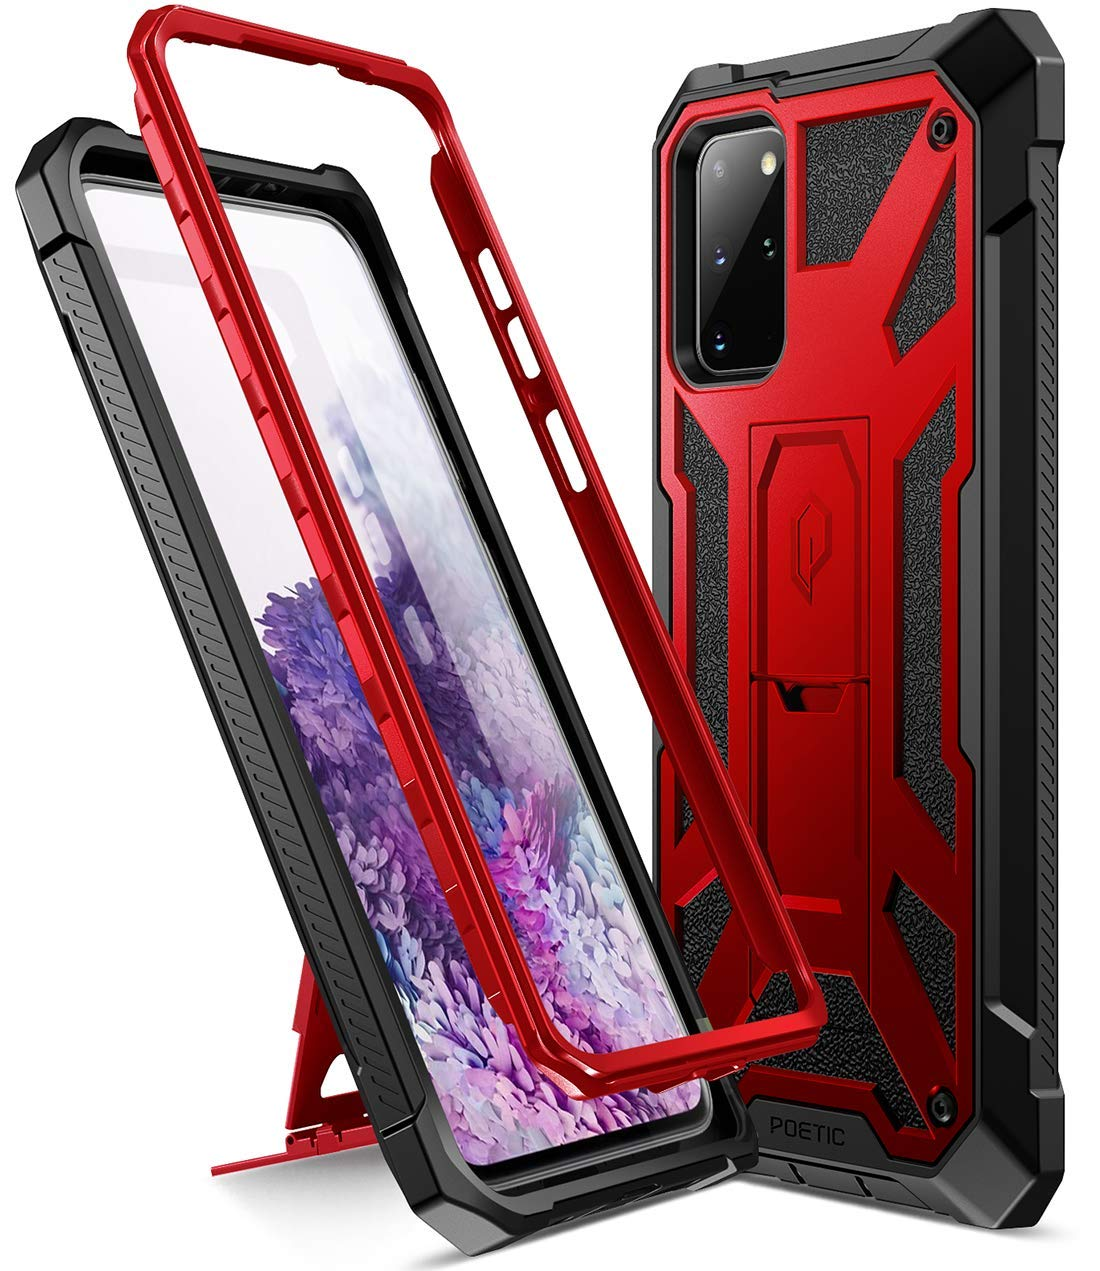 Poetic Spartan Series Designed for Galaxy S20+ Plus Case, Full-Body Rugged Dual-Layer Metallic Color Accent Premium Leather Texture Shockproof Protective Cover with Kickstand, Metallic Red